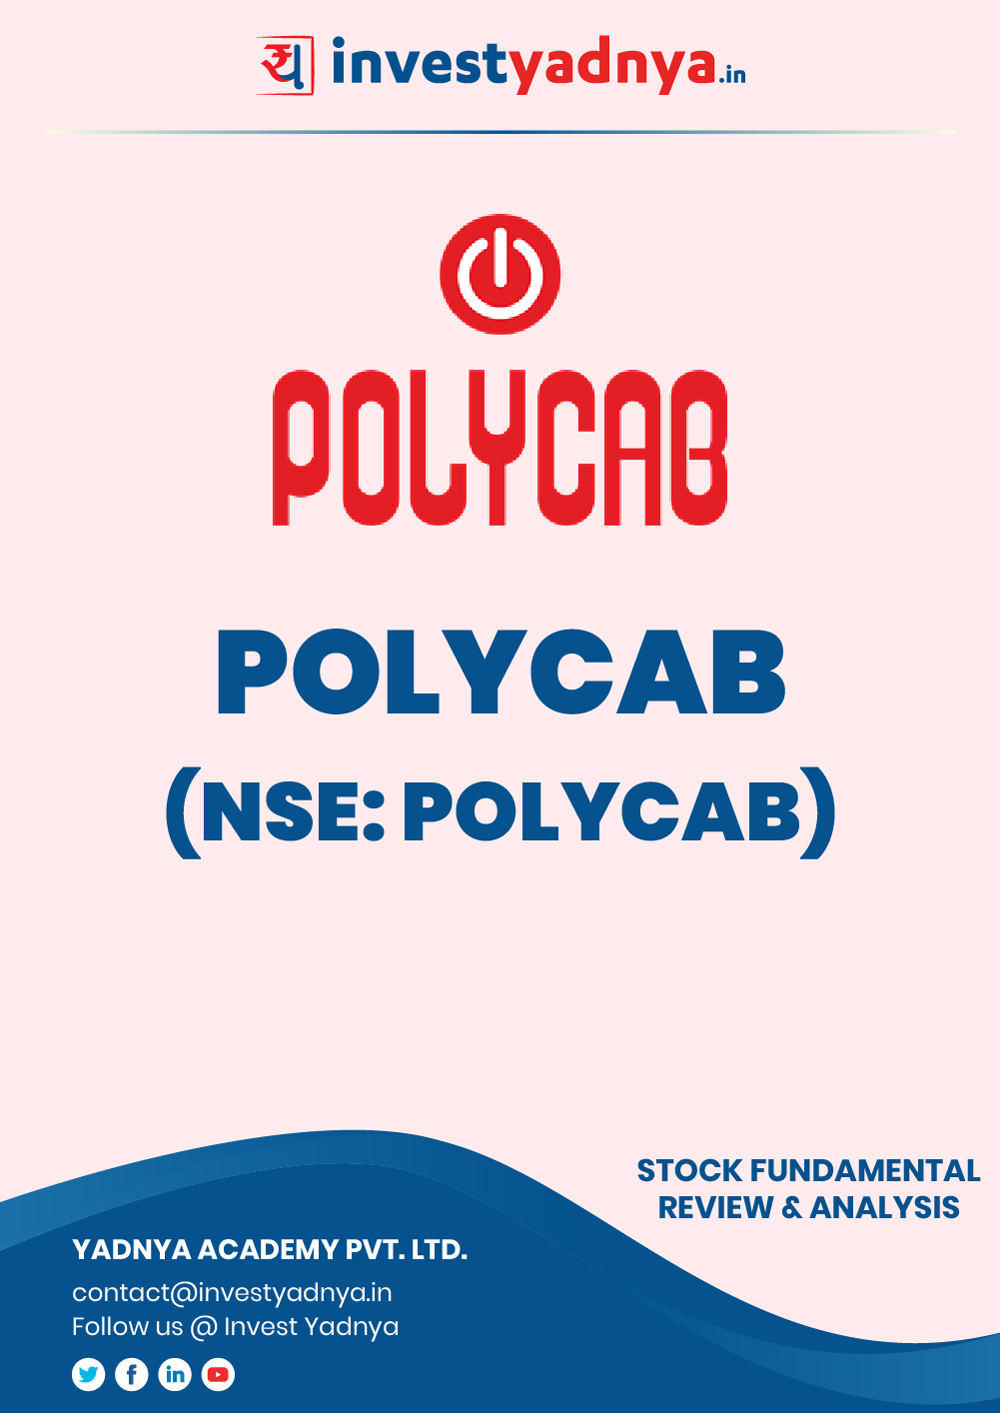 Polycab is the largest wire manufacturer in India. They have issued a new IPO recently in 2019 which was listed at high premium. Polycab India Ltd. company/Stock Review & Analysis based on Q22019-20 and FY2018-19 data. The book contains Fundamental Analysis of the company considering both Quantitative (Financial) and Qualitative parameters. Book is updated as on 25th Dec, 2019.